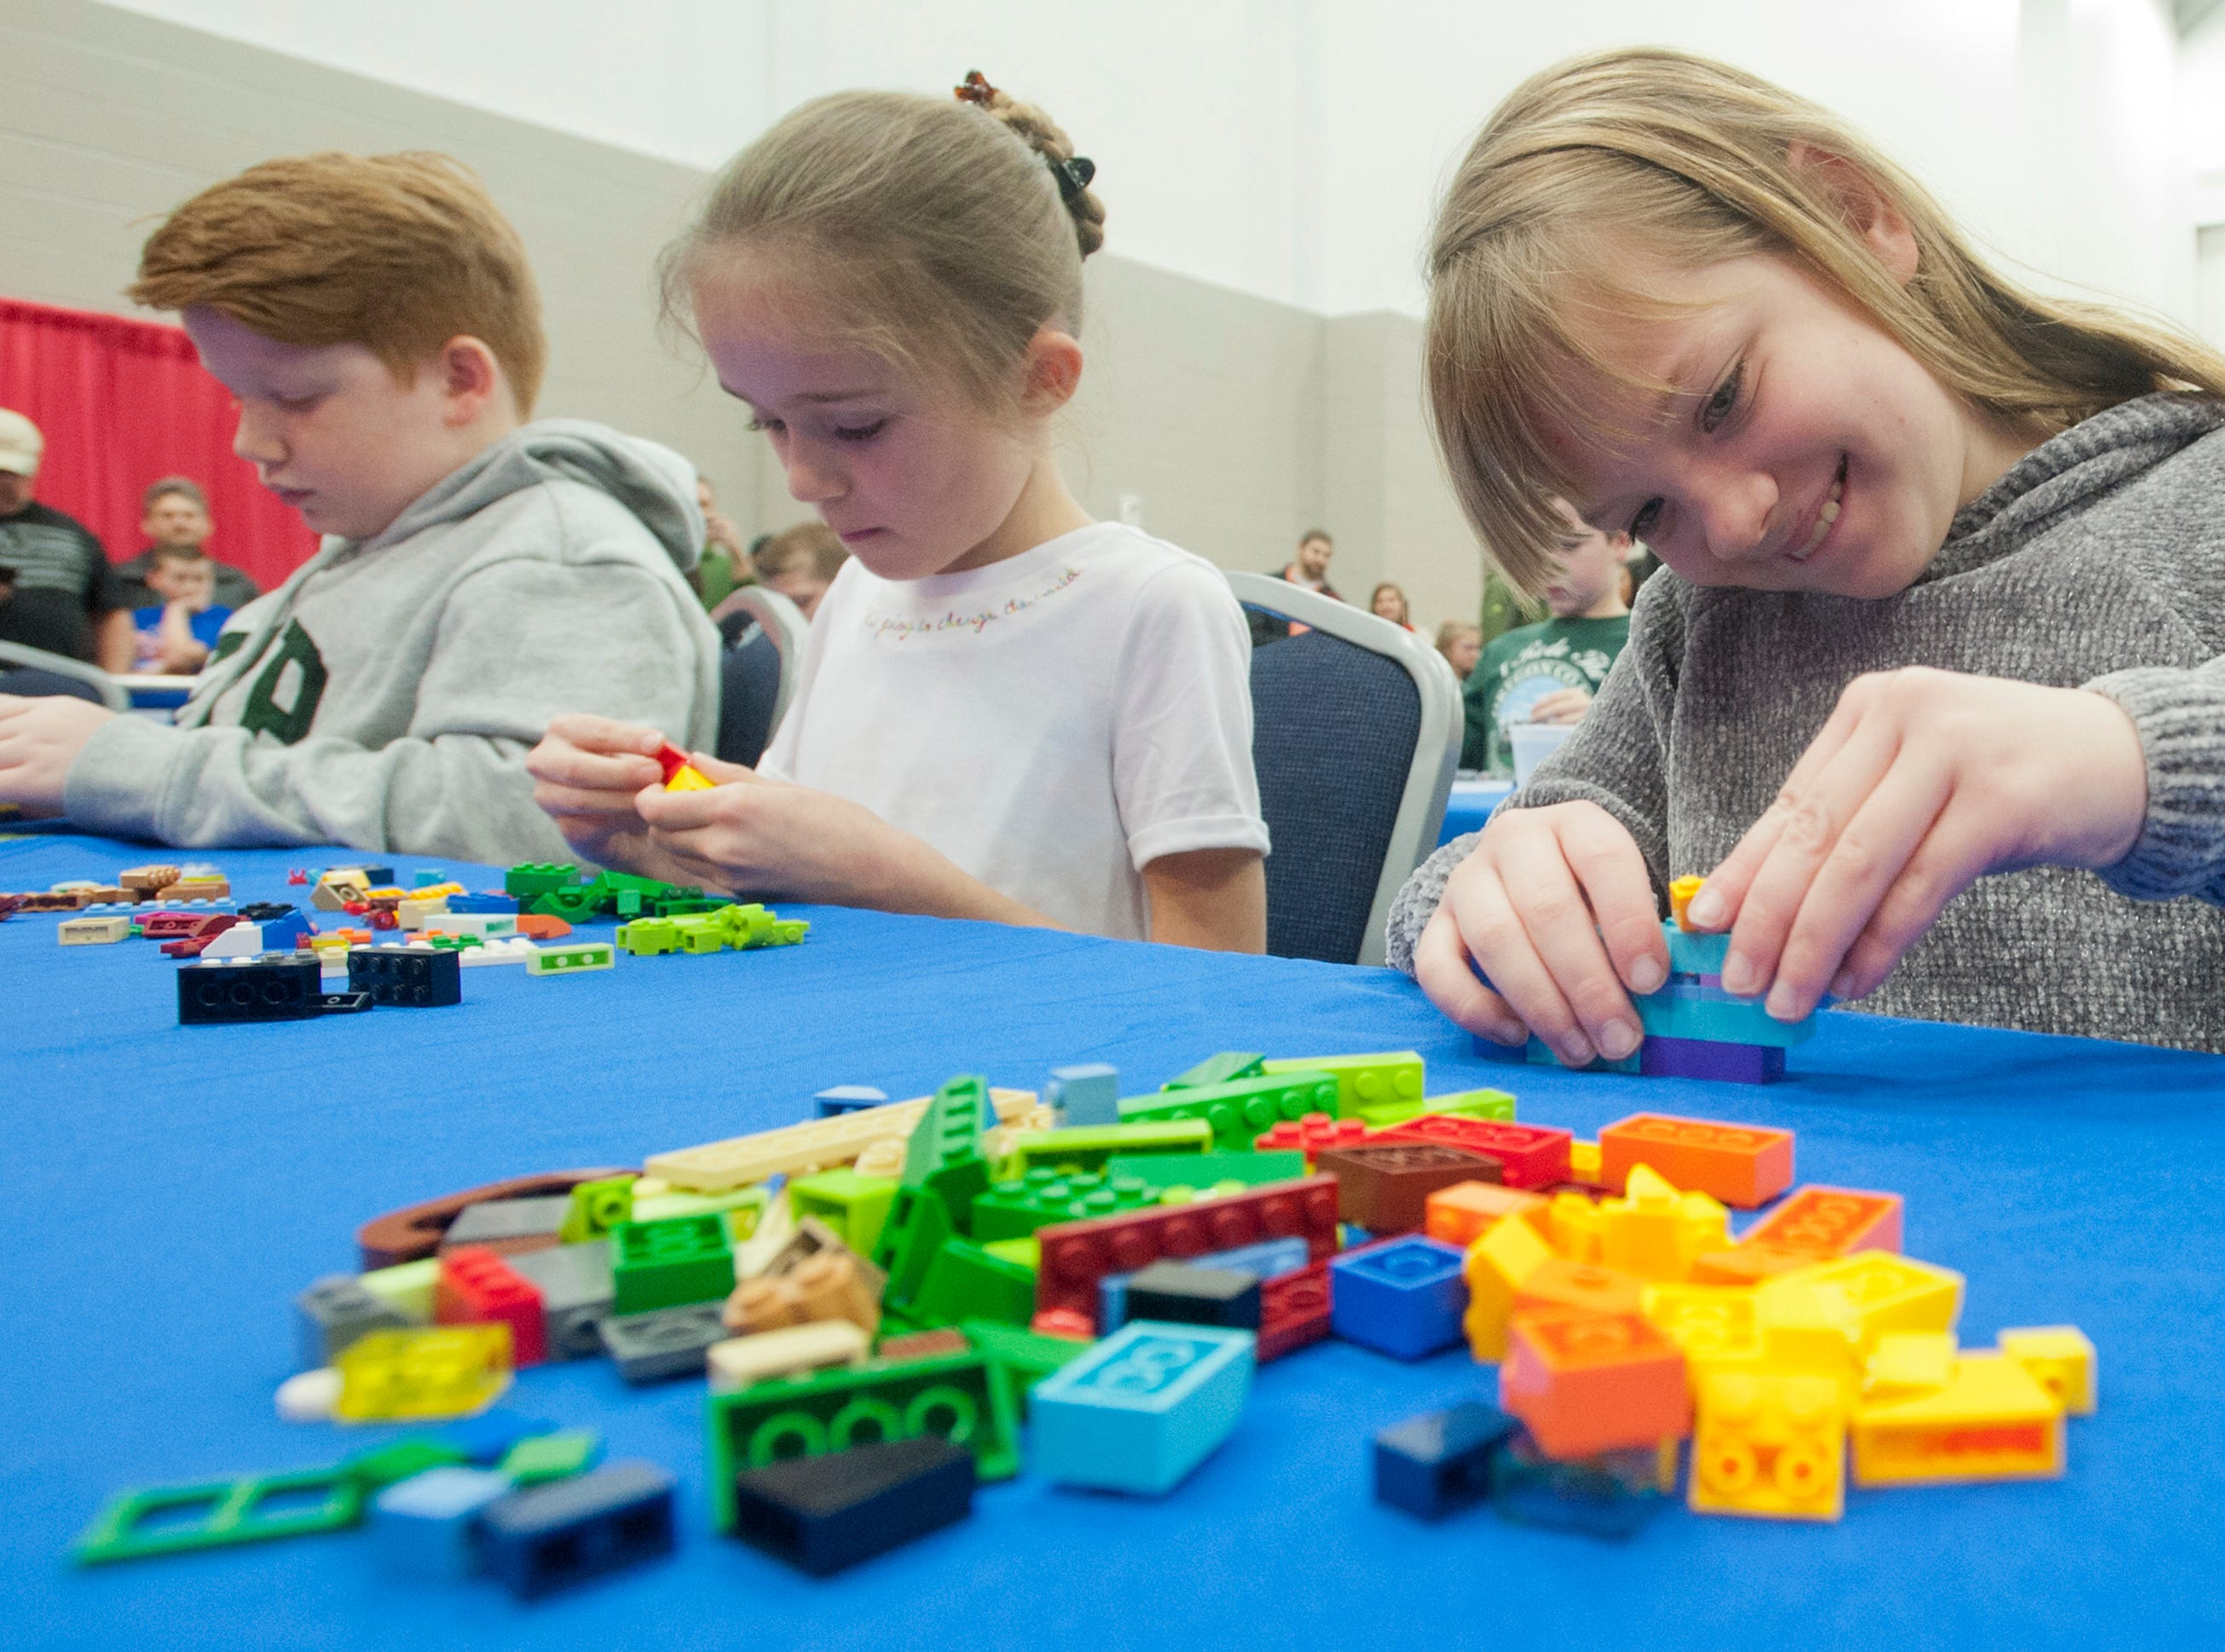 During a Lego building competition, l-r: Sam Catron, 11, of Shelbyville, Kinsley Mast, 8, of Mountain View, Ark. and Petra Hawkins, 9, of Danvilleall try their hand at creating a space station at the BrickUniverse Lego Fan Convention at the Kentucky International Convention Center in downtown Louisville.19 January 2019